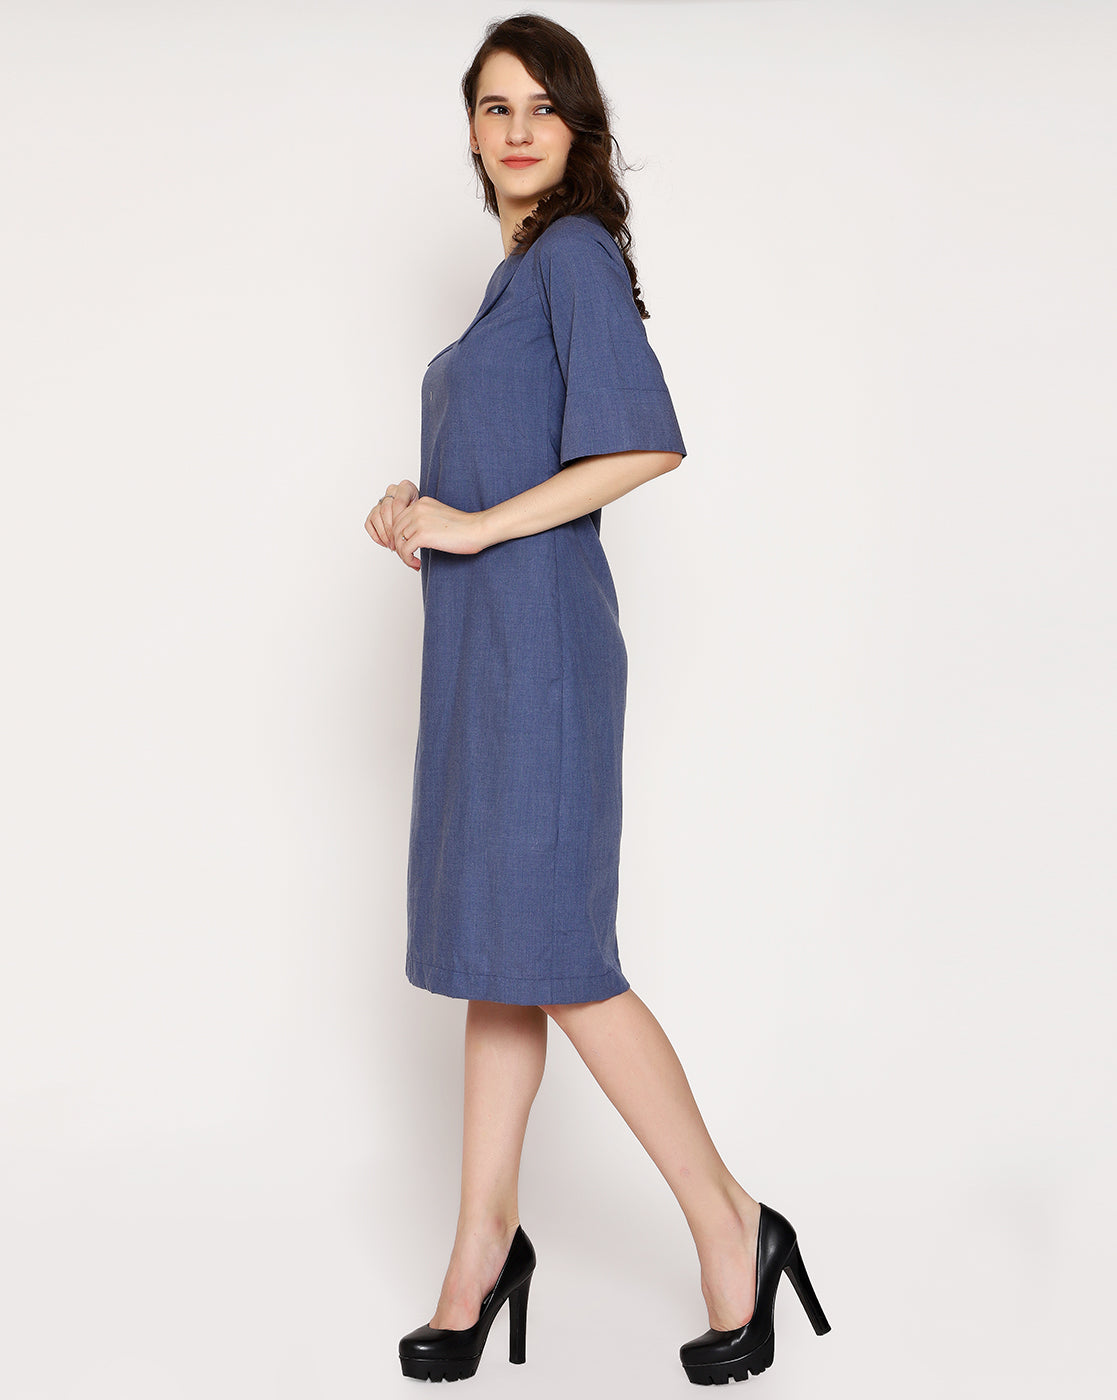 The Veronica Wide Collar - Aged Denim